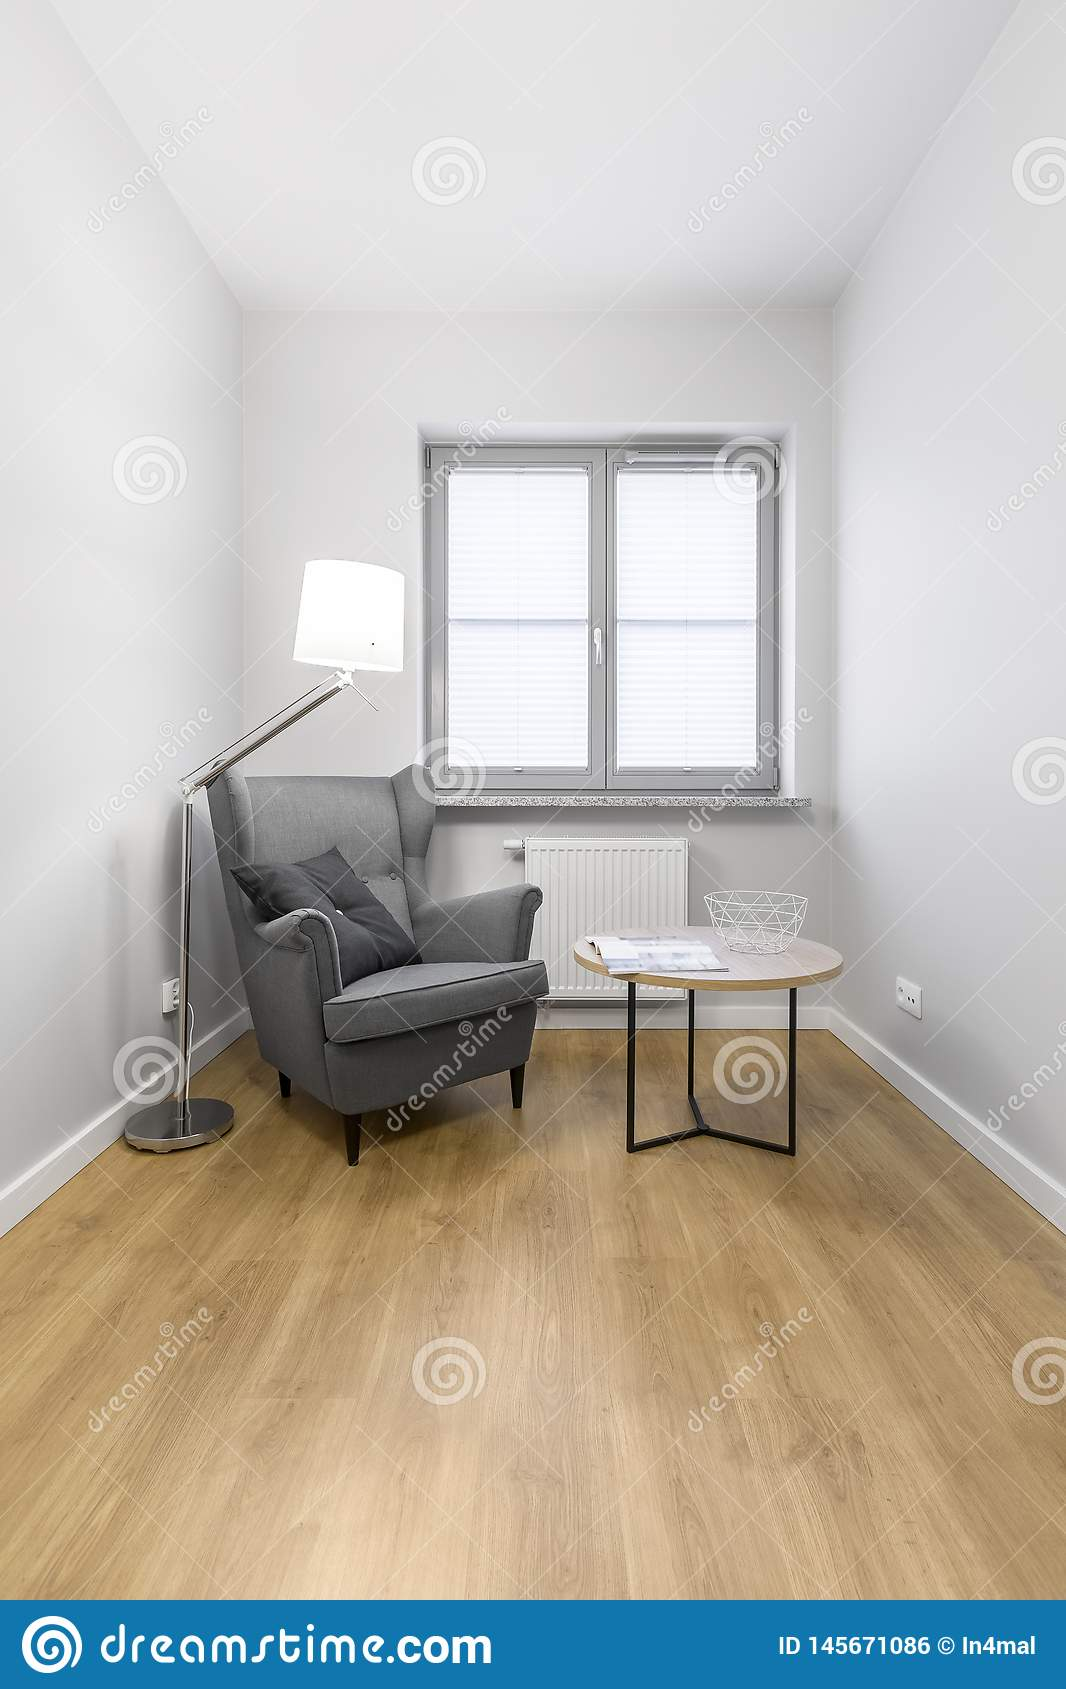 Grey Armchair With Small Table Stock Photo - Image of ...